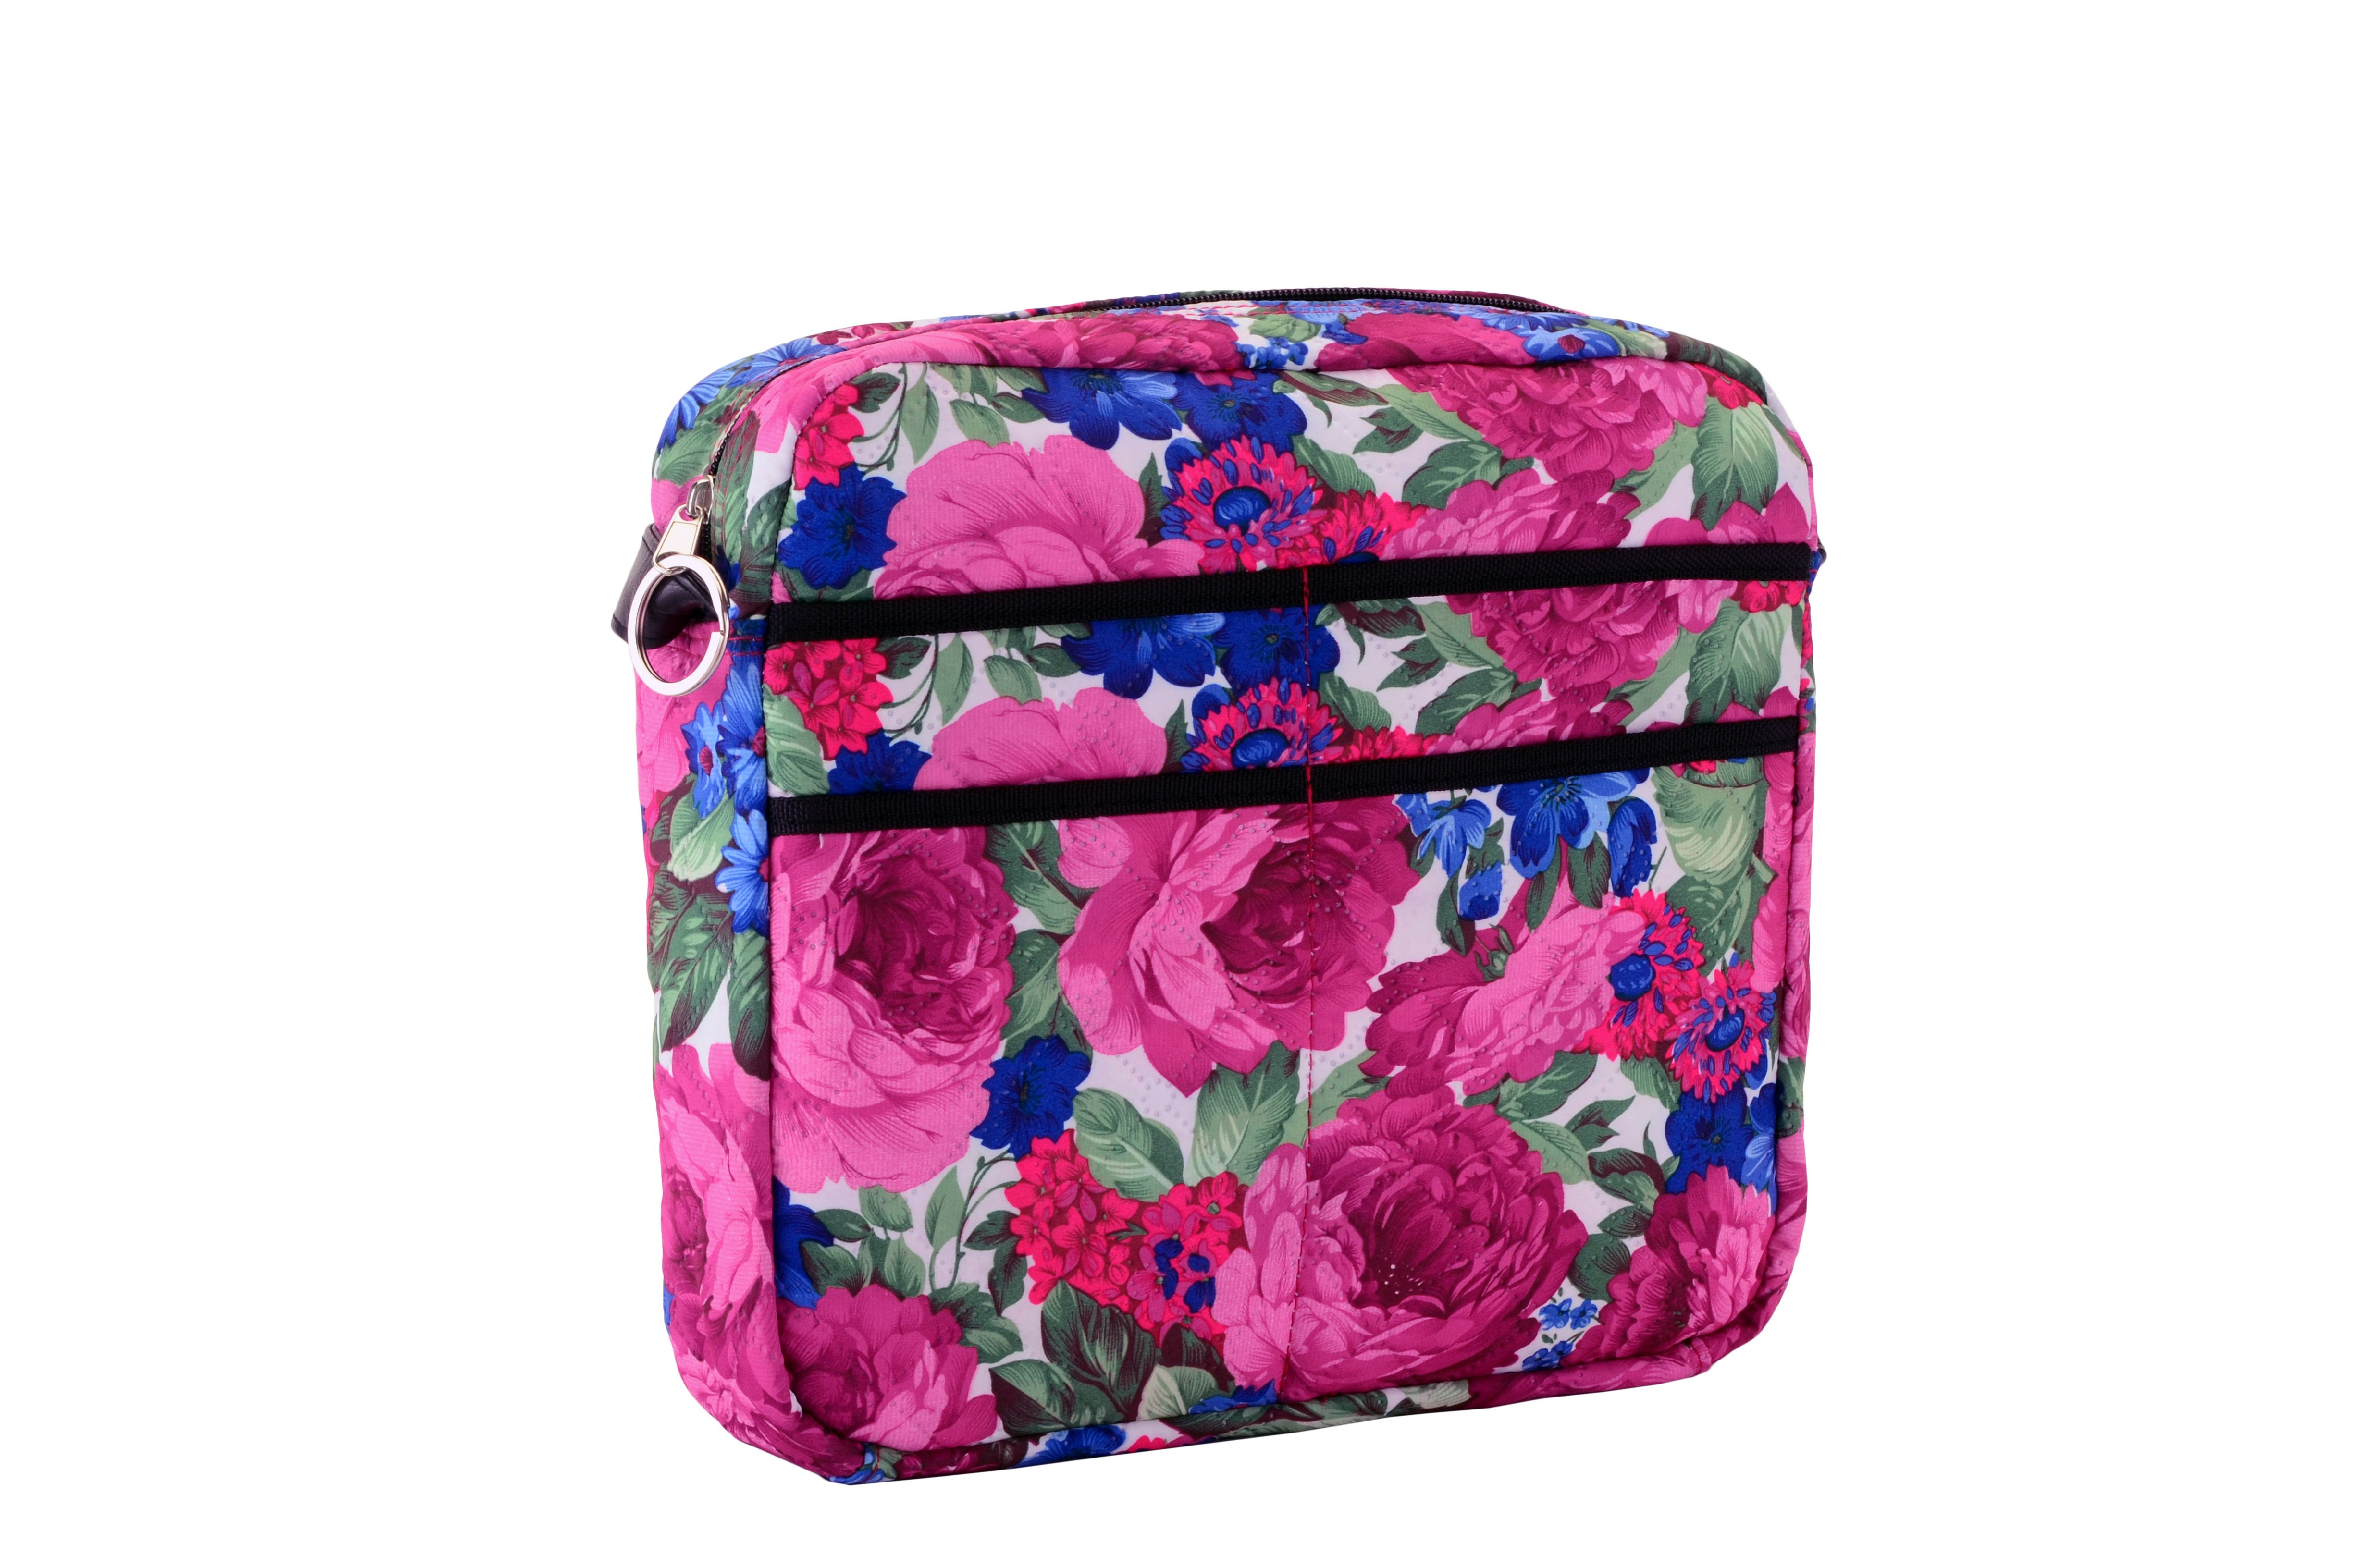 Mobility Accessories fashion style Bags, Walker bag